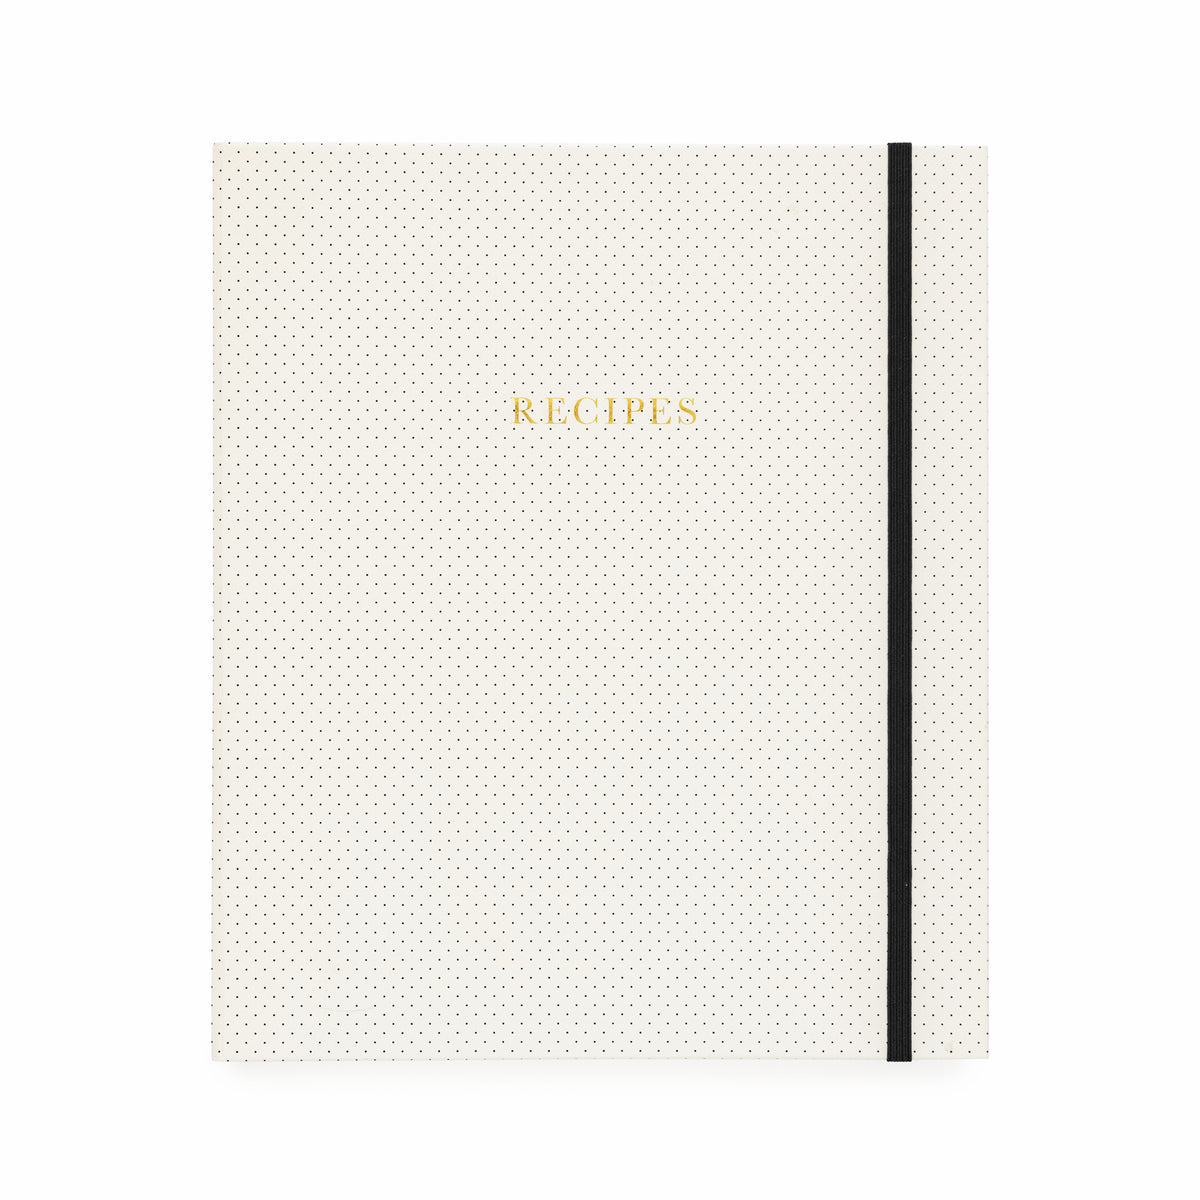 Cream and black dot binder with gold foil recipes and a black elastic closure